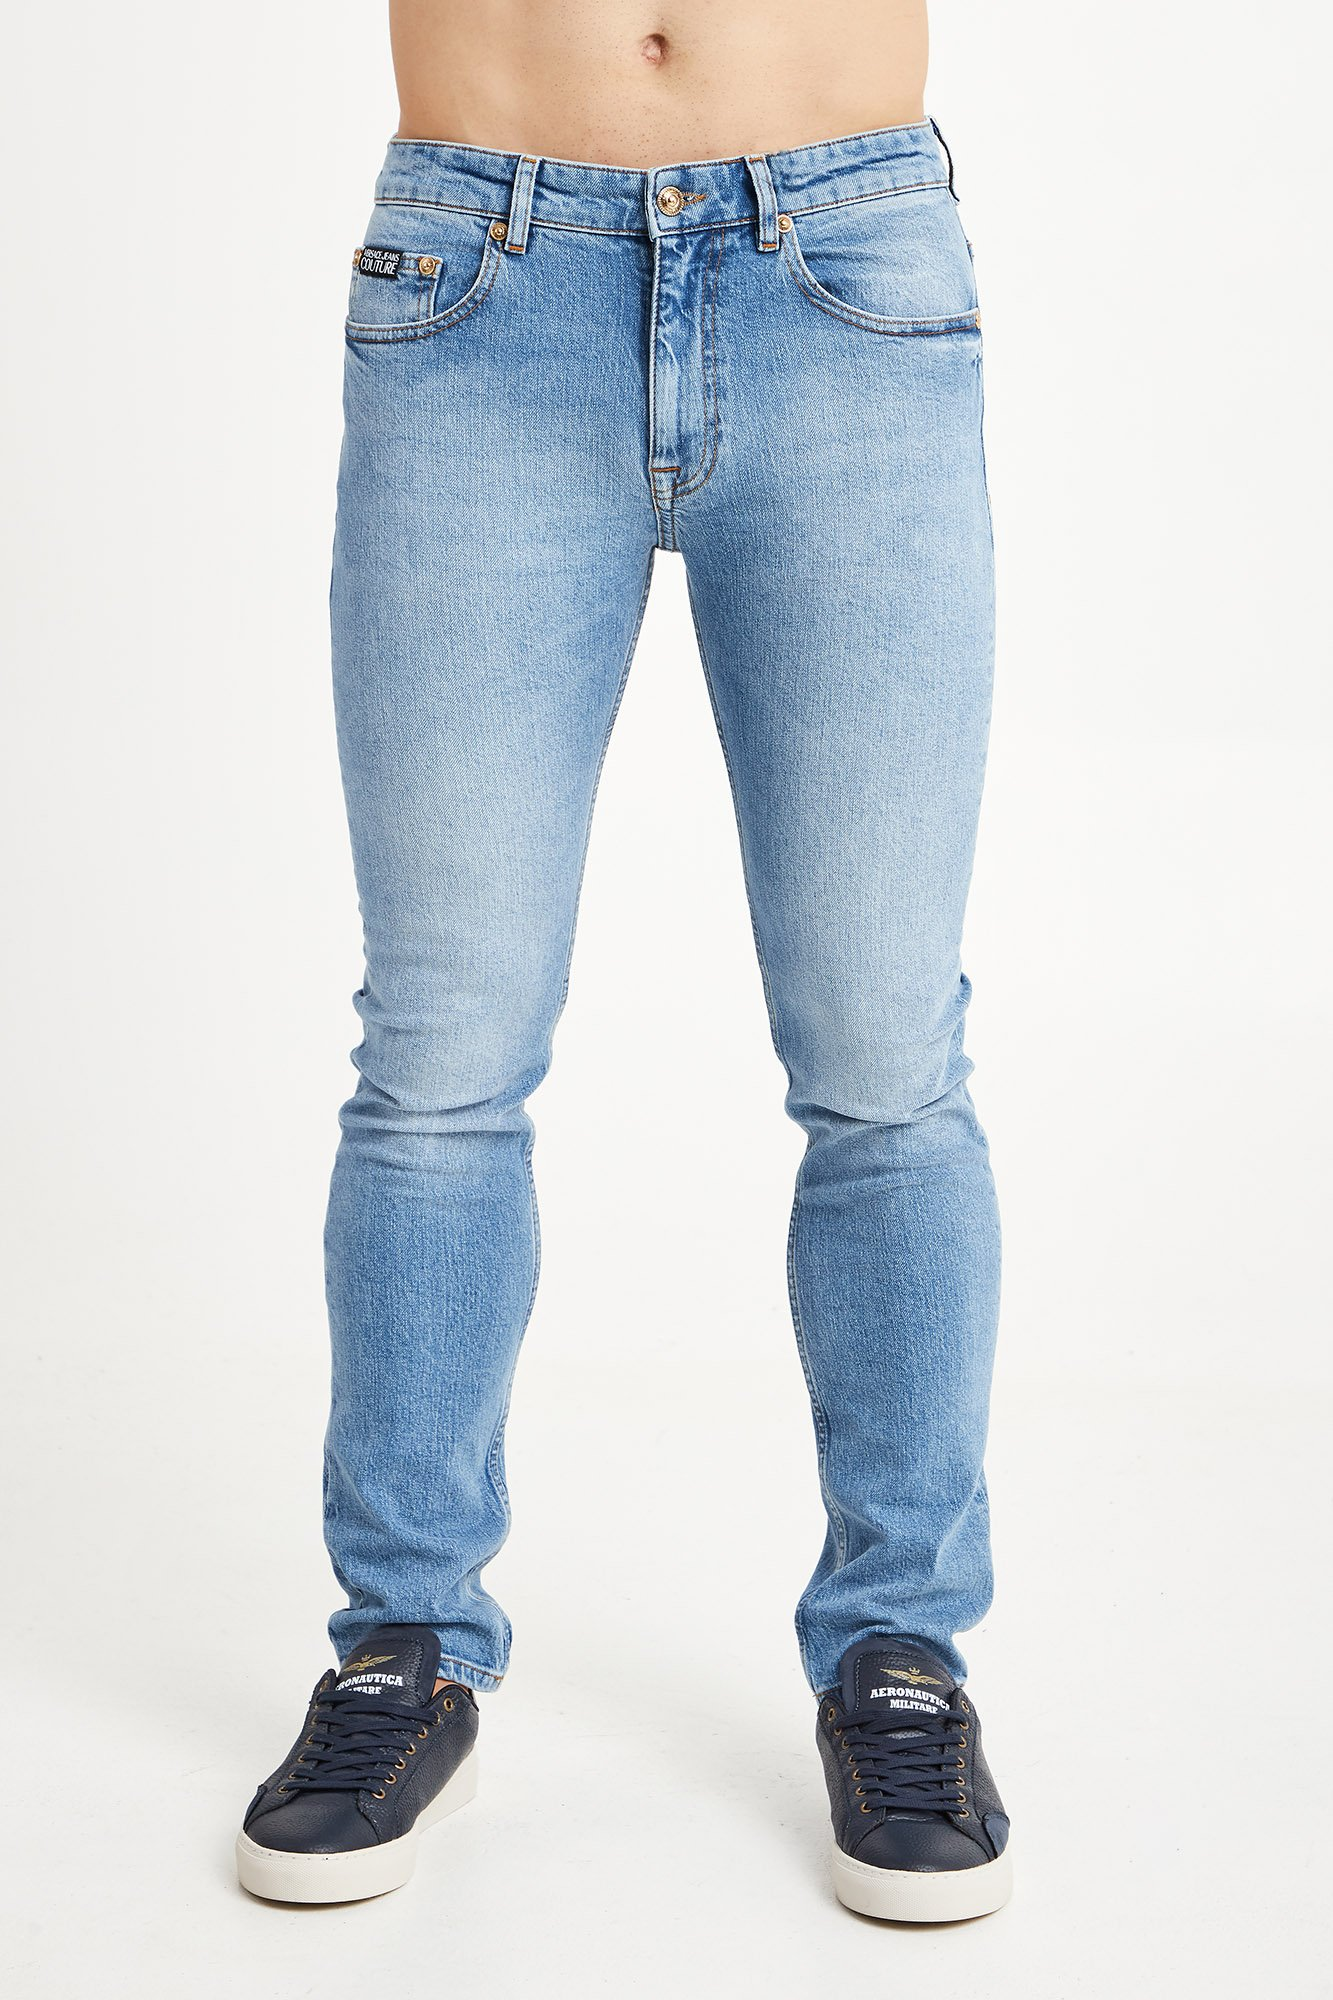 JEANSY VERSACE JEANS COUTURE rozmiar 34